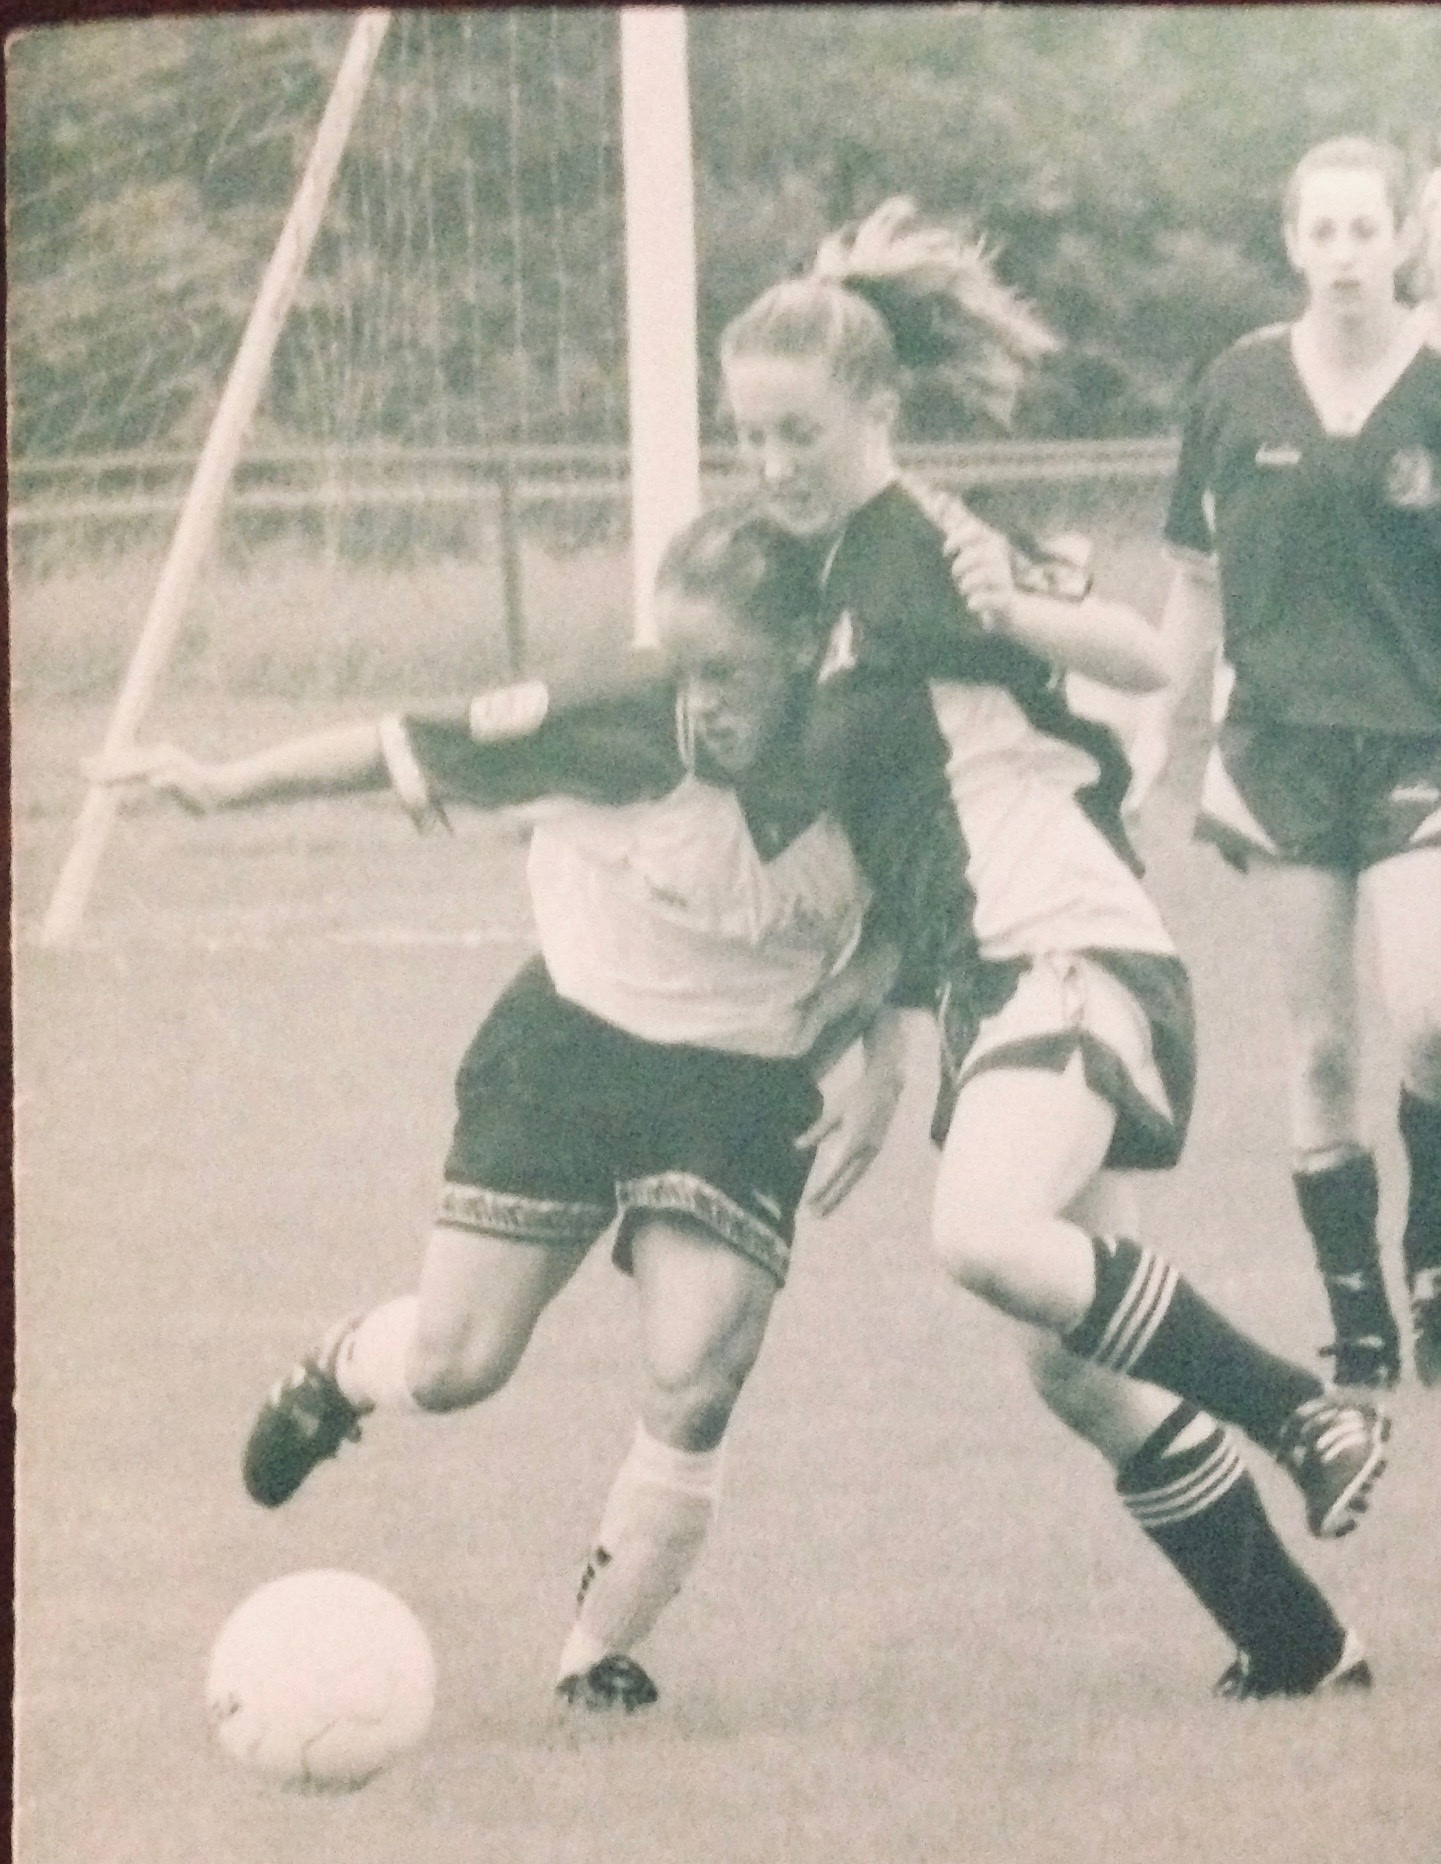 A young soccer phenom, but those quads were destined for cycling!